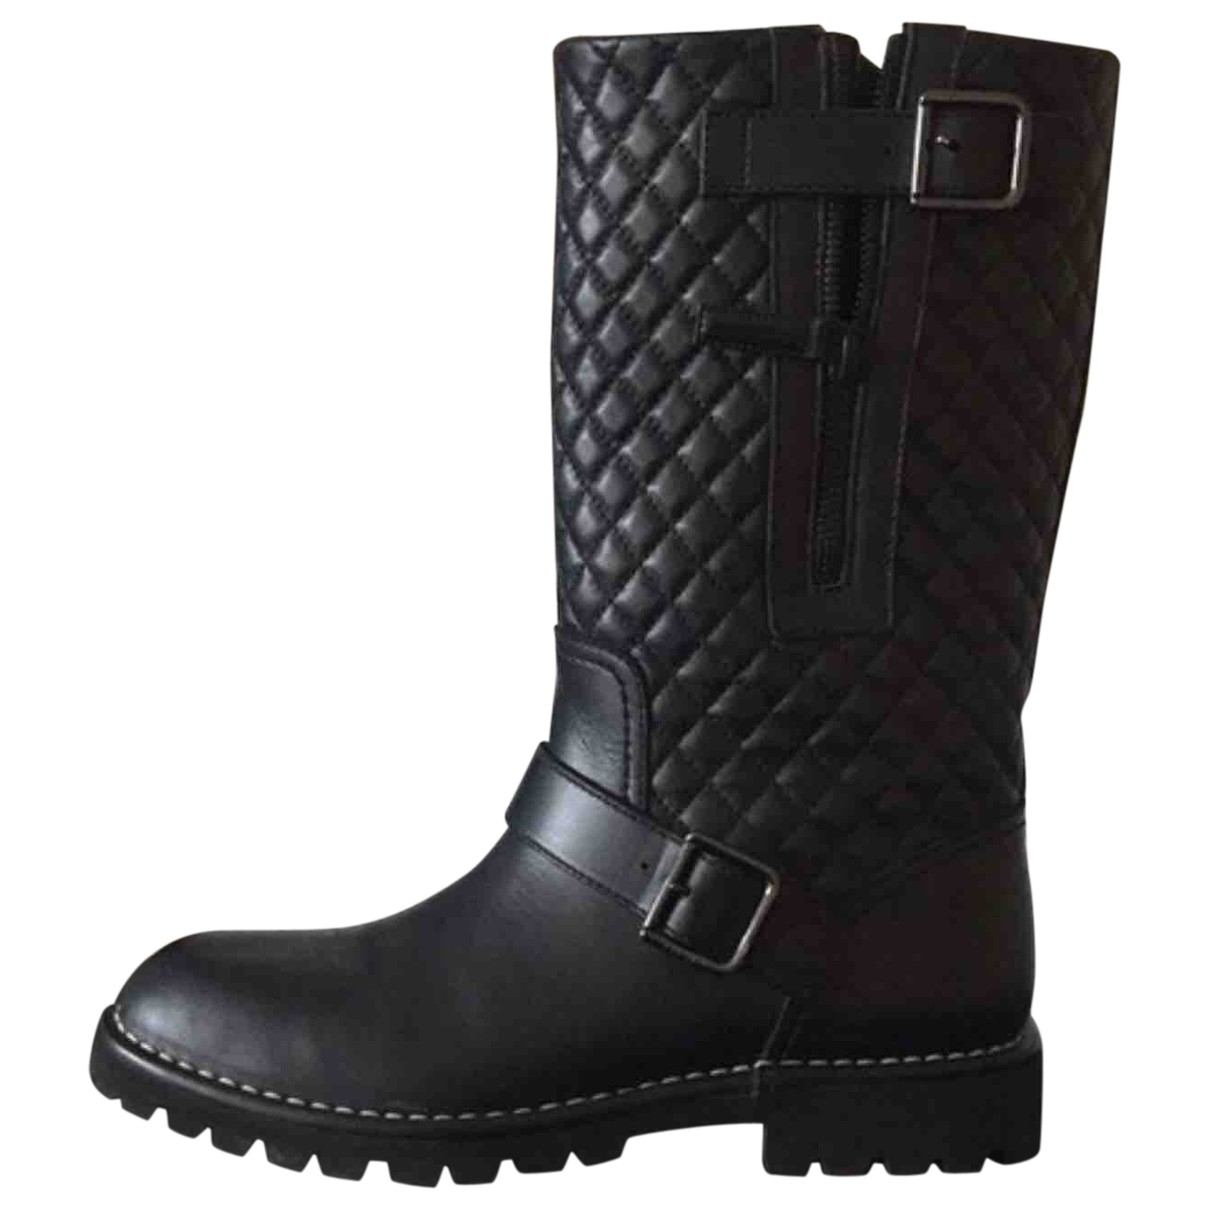 Chanel \N Black Leather Boots for Women 38.5 EU